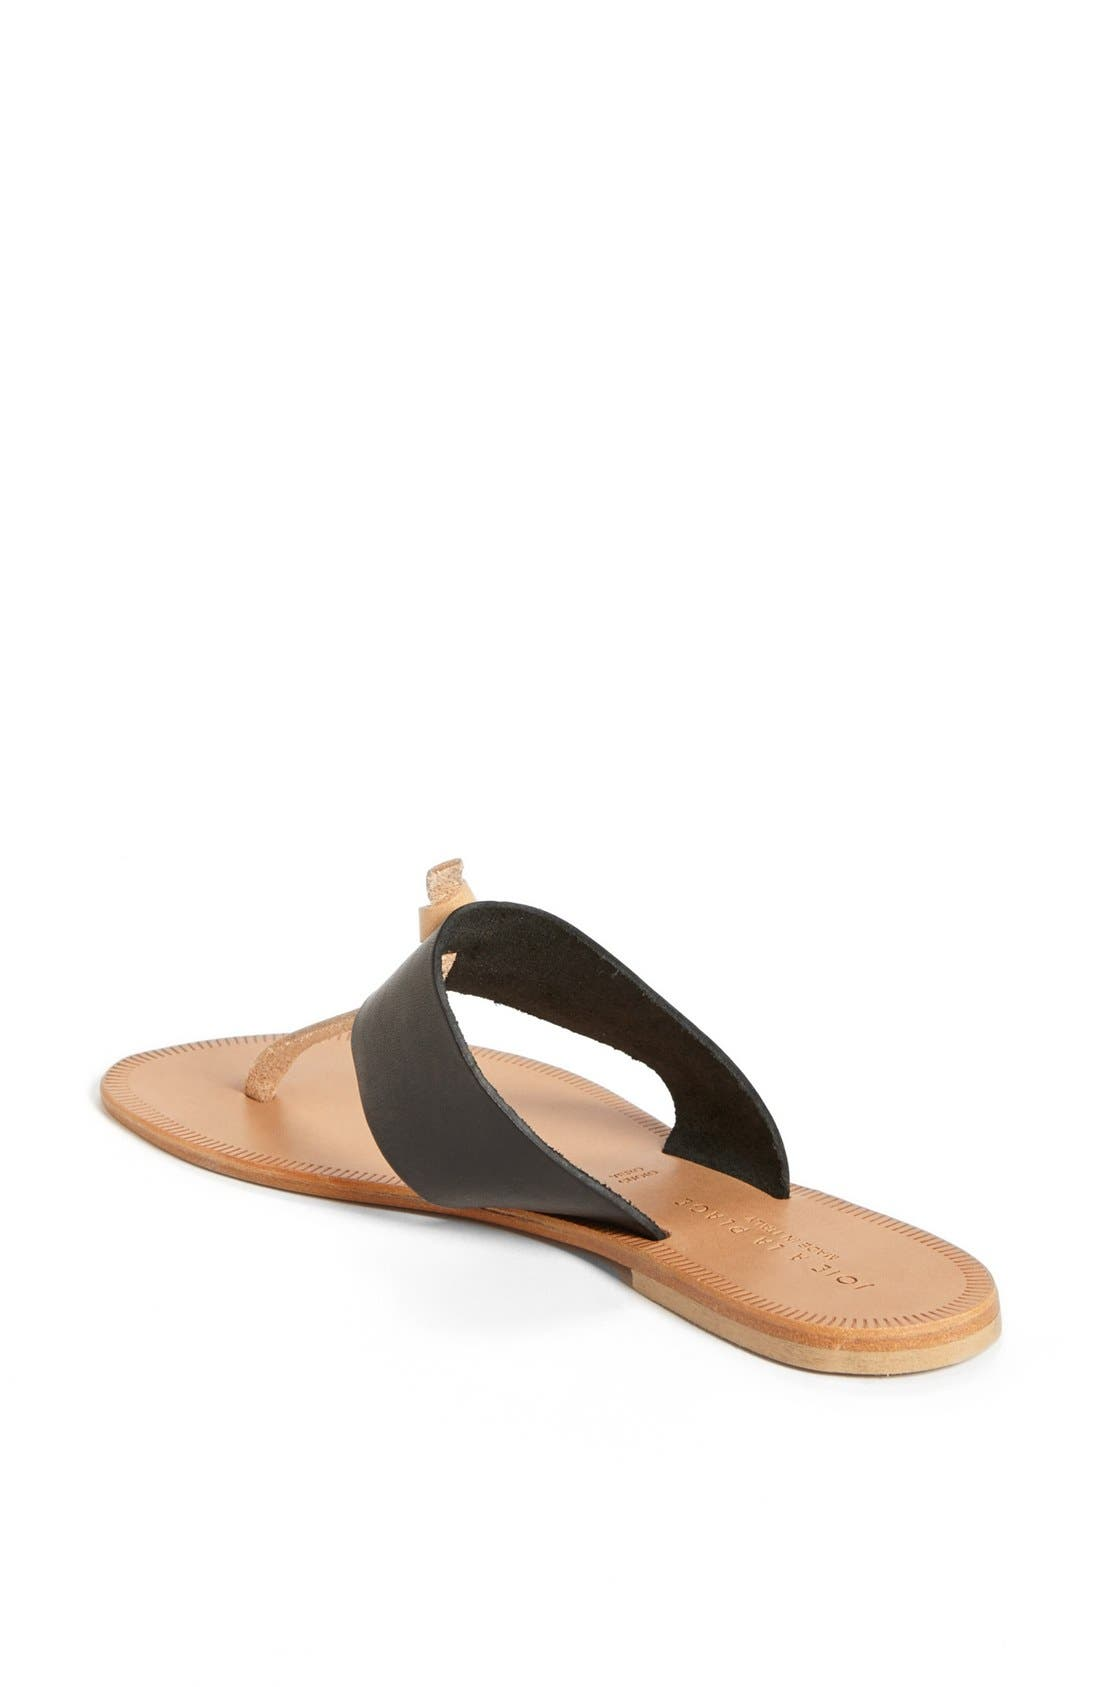 a la Plage 'Nice' Flip Flop,                             Alternate thumbnail 2, color,                             001